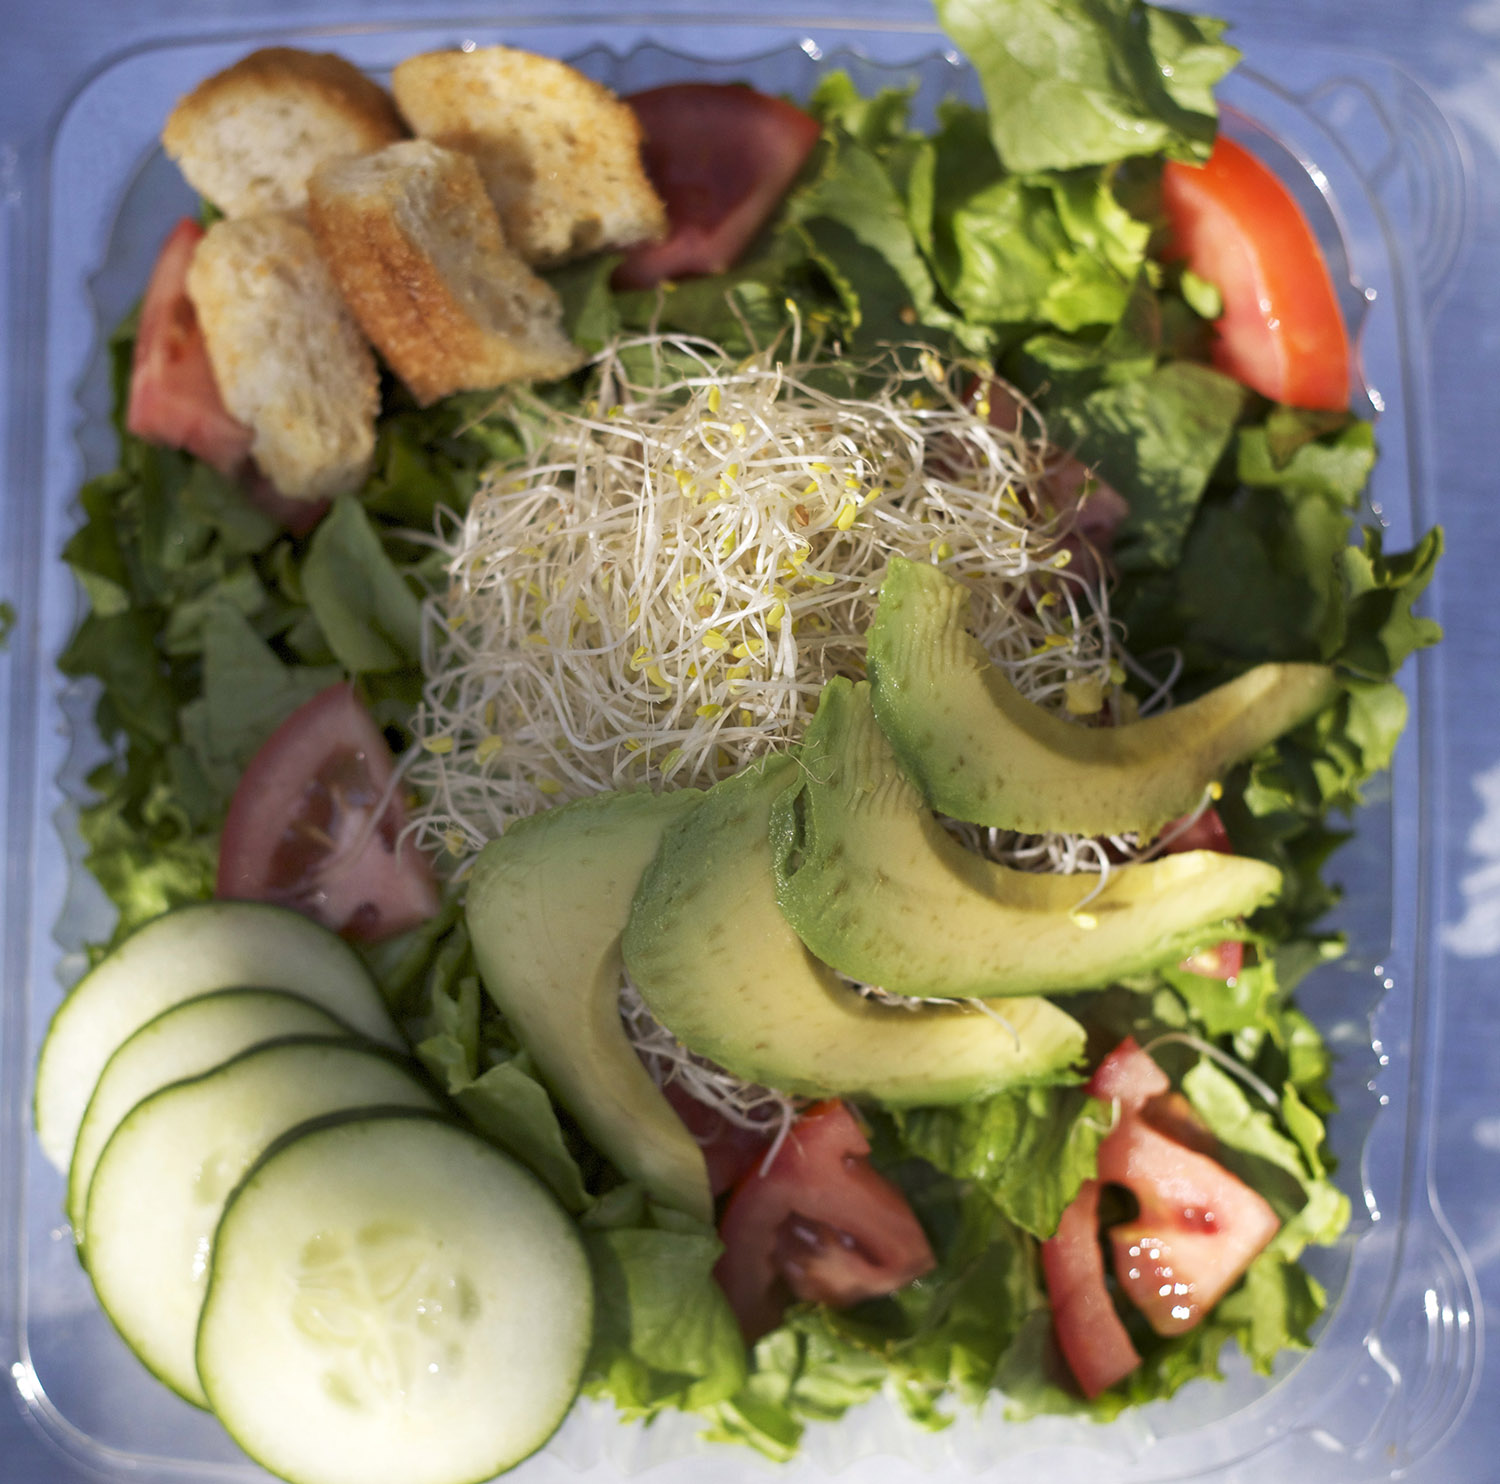 green leaf lettuce • tomato • cucumber • sprouts • croutons • avocado